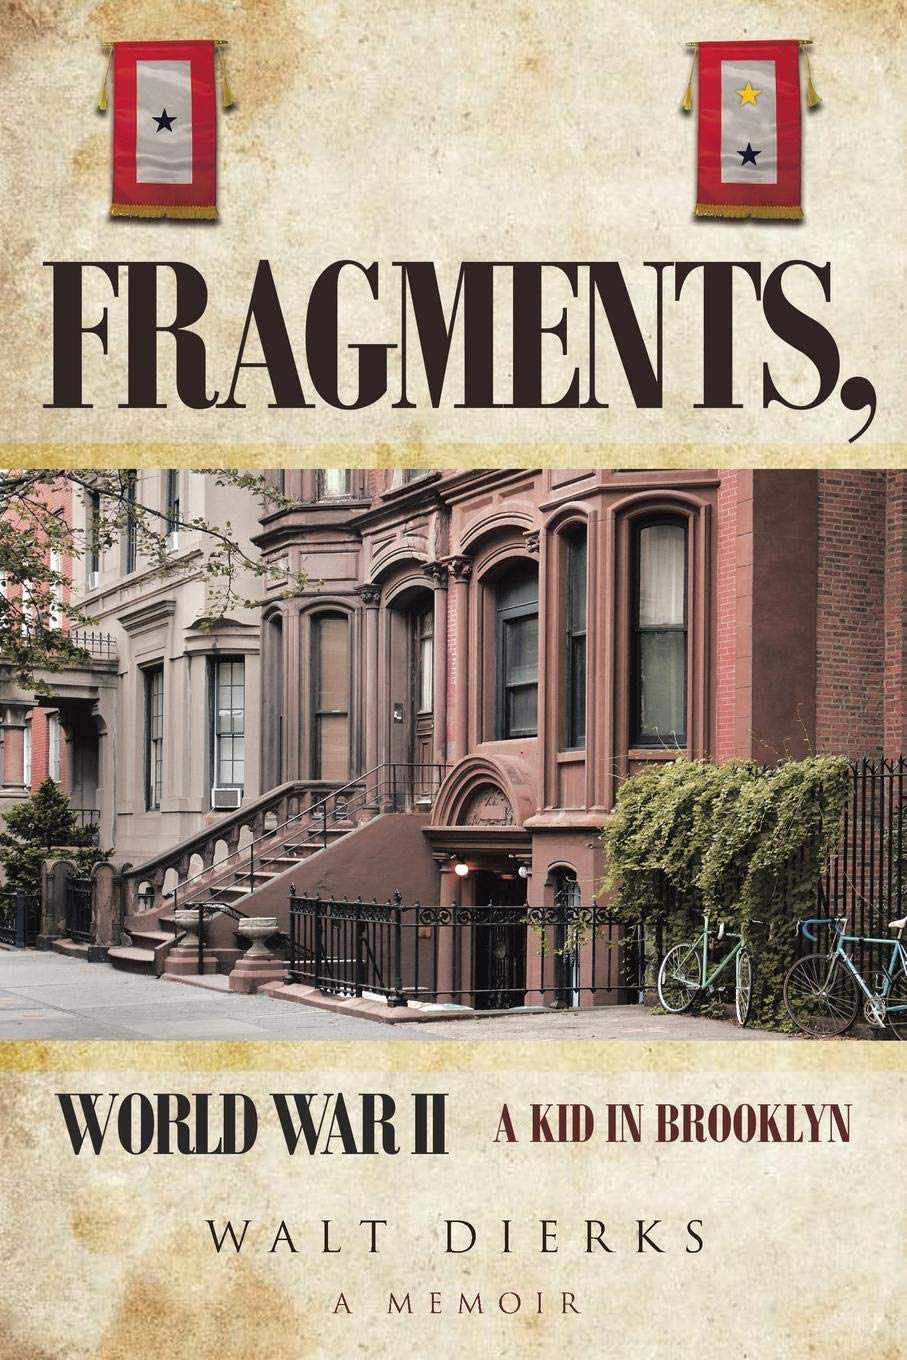 Fragments, World War II: A Kid in Brooklyn: Walt Dierks